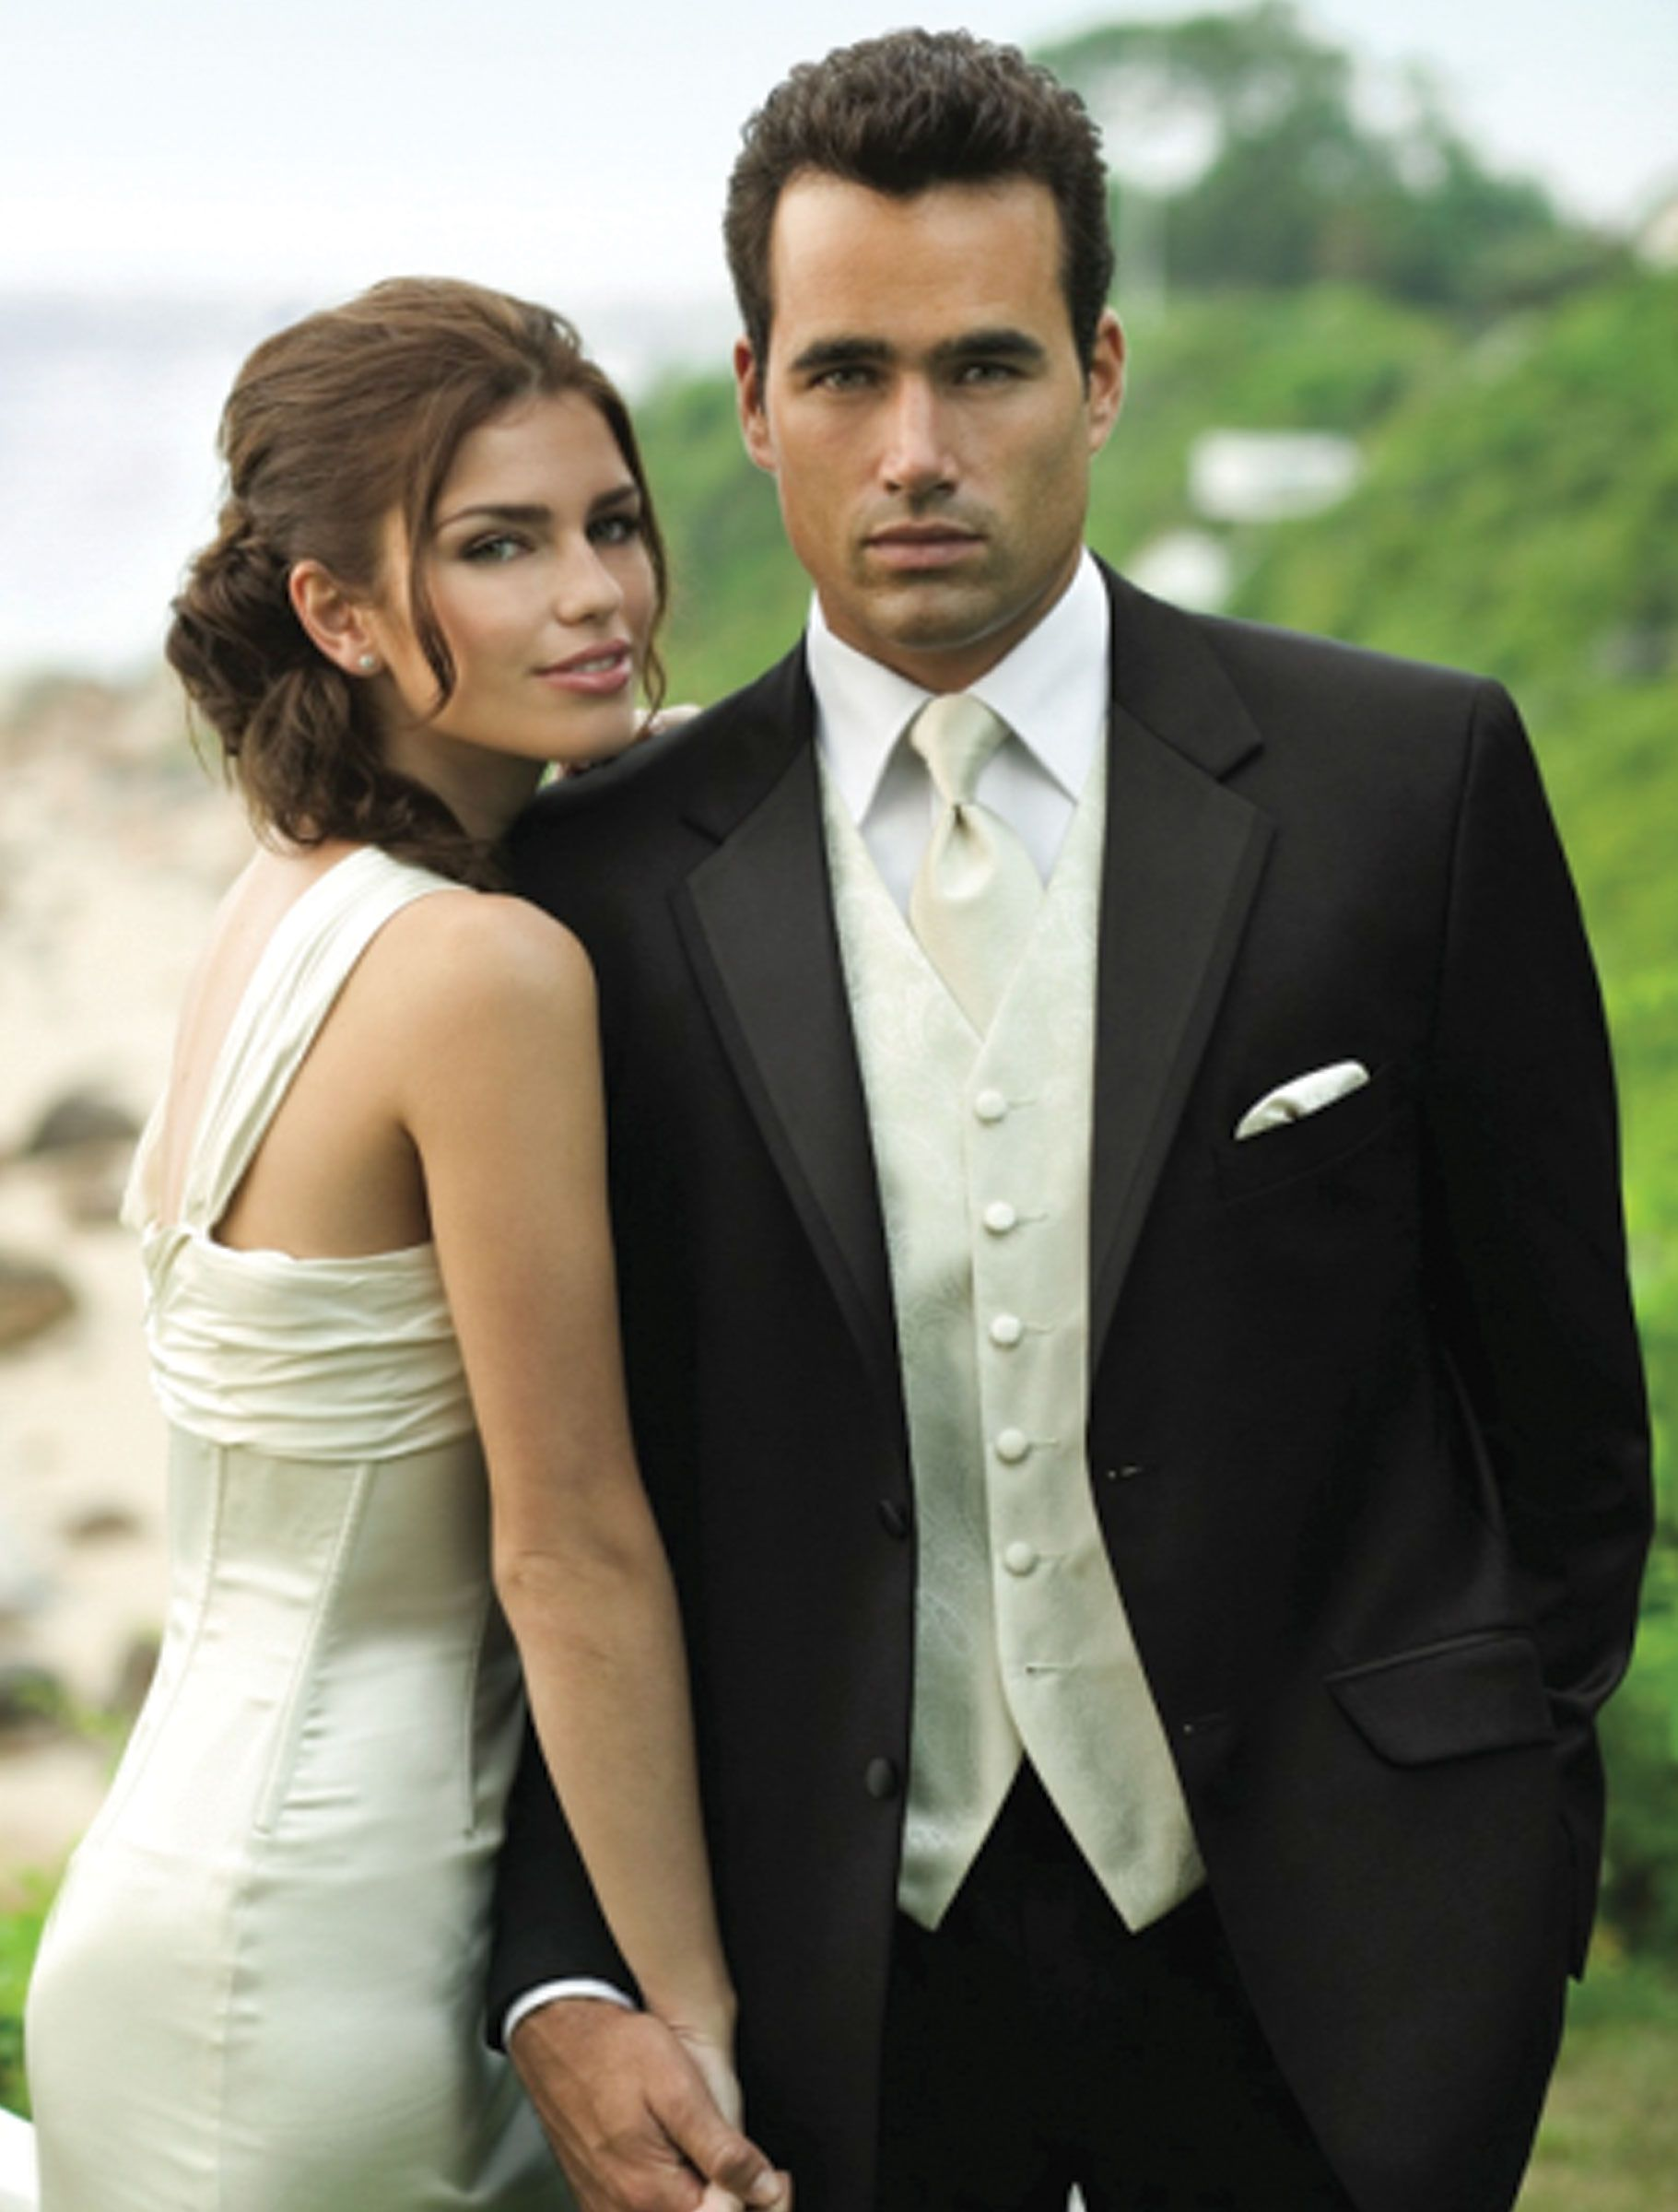 Tux For The Groom Black Tux White Shirt Ivory Vest And Tie To Match My Gown Wedding Tux Black Tux Tuxedo Wedding